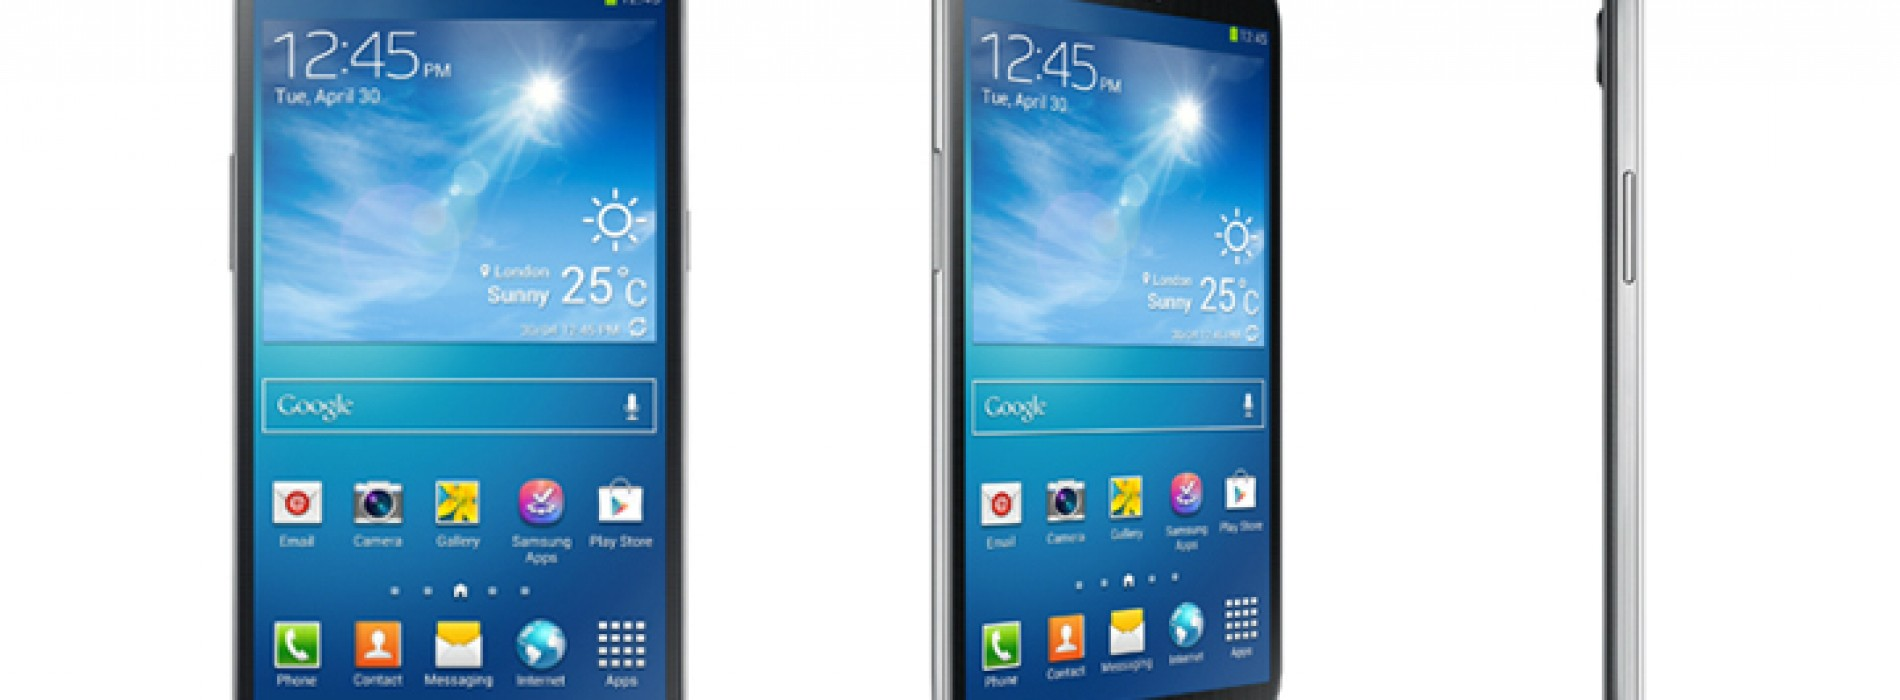 Samsung Galaxy Mega to arrive in Canada in coming weeks